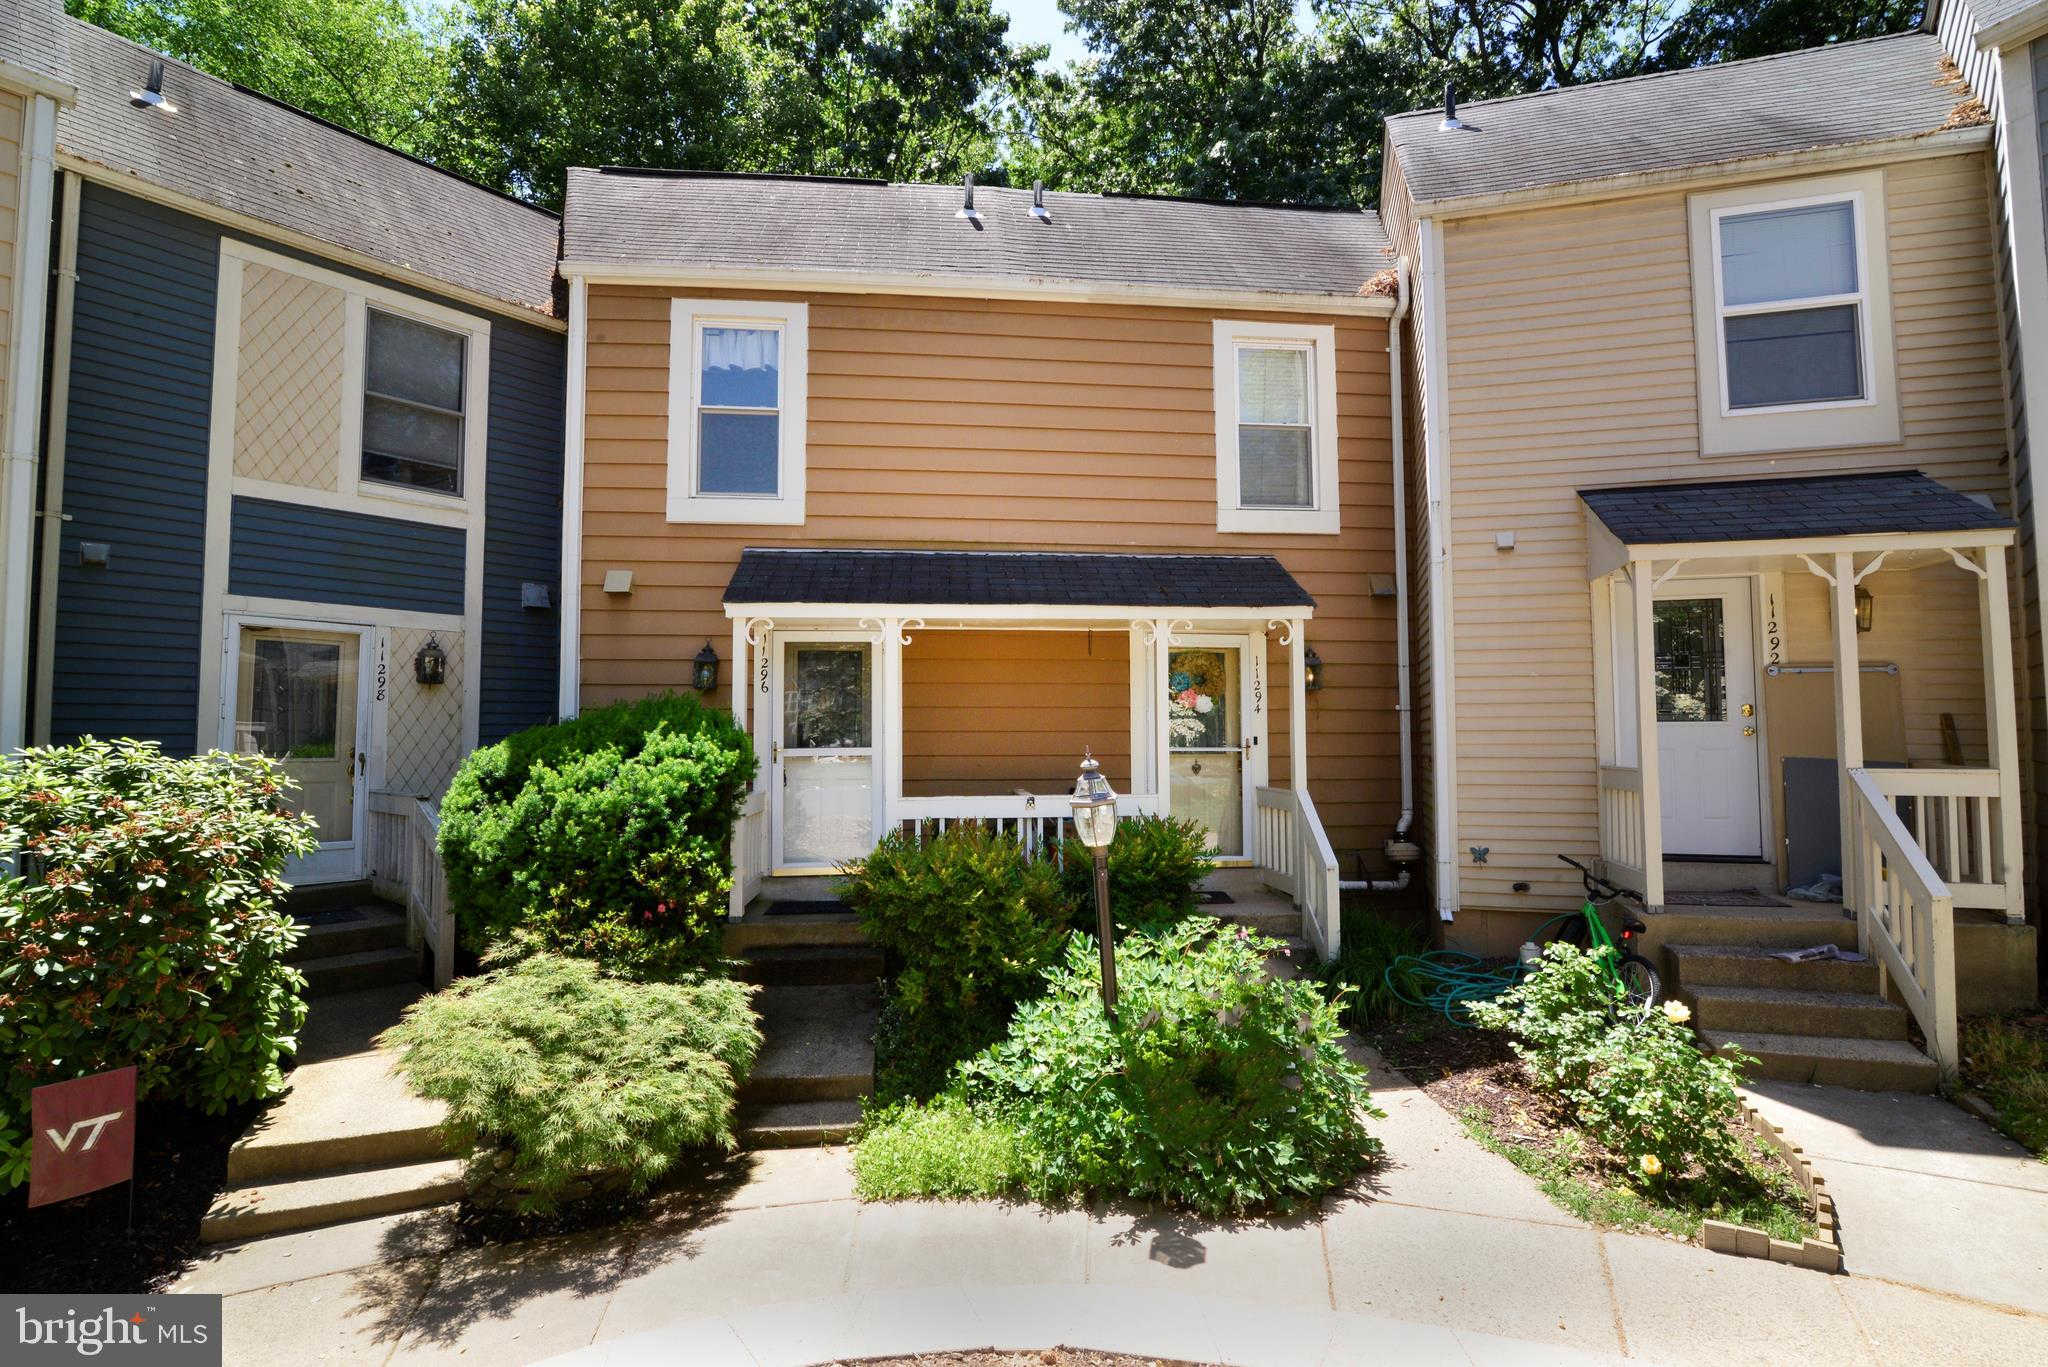 11296 Silentwood Lane, Reston, VA 20191 now has a new price of $374,900!